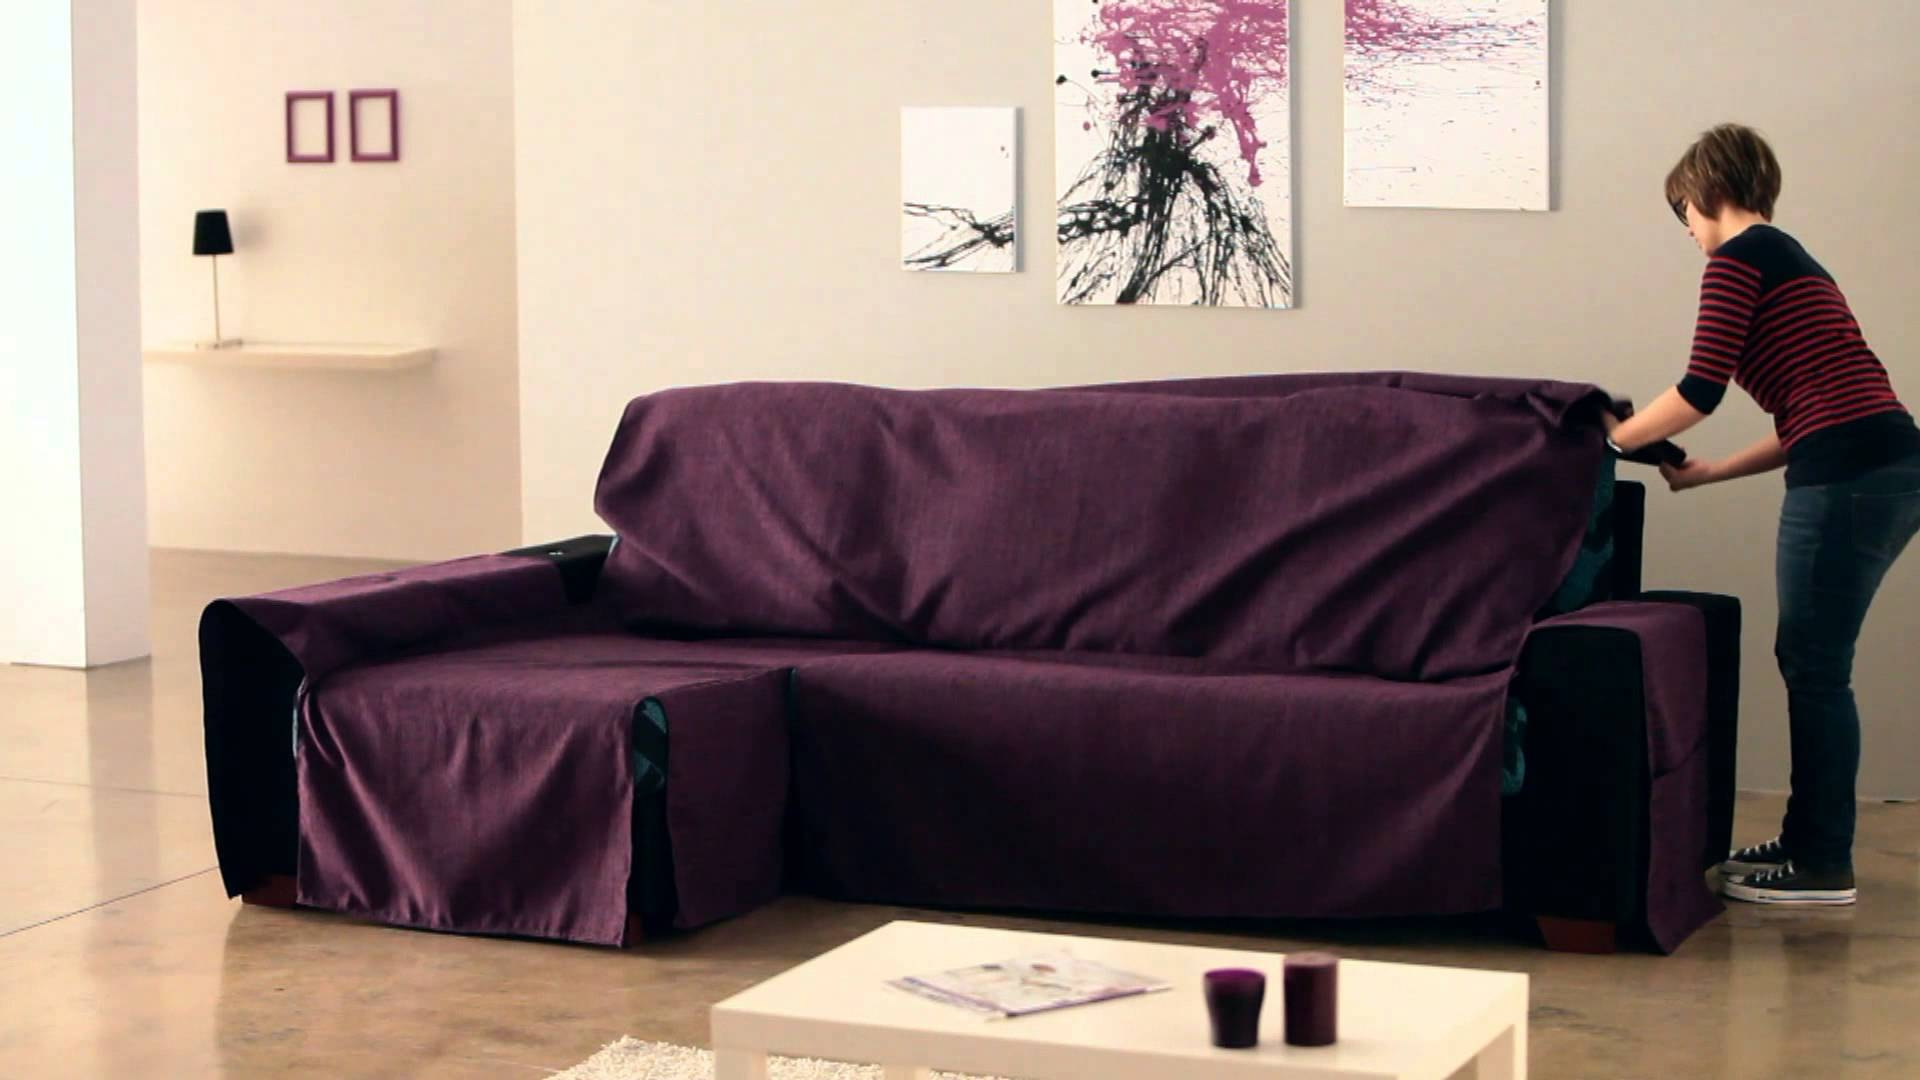 How To Put An Universal Chaise Sofa Covers Youtube Within Chaise Sofa Covers (View 5 of 12)